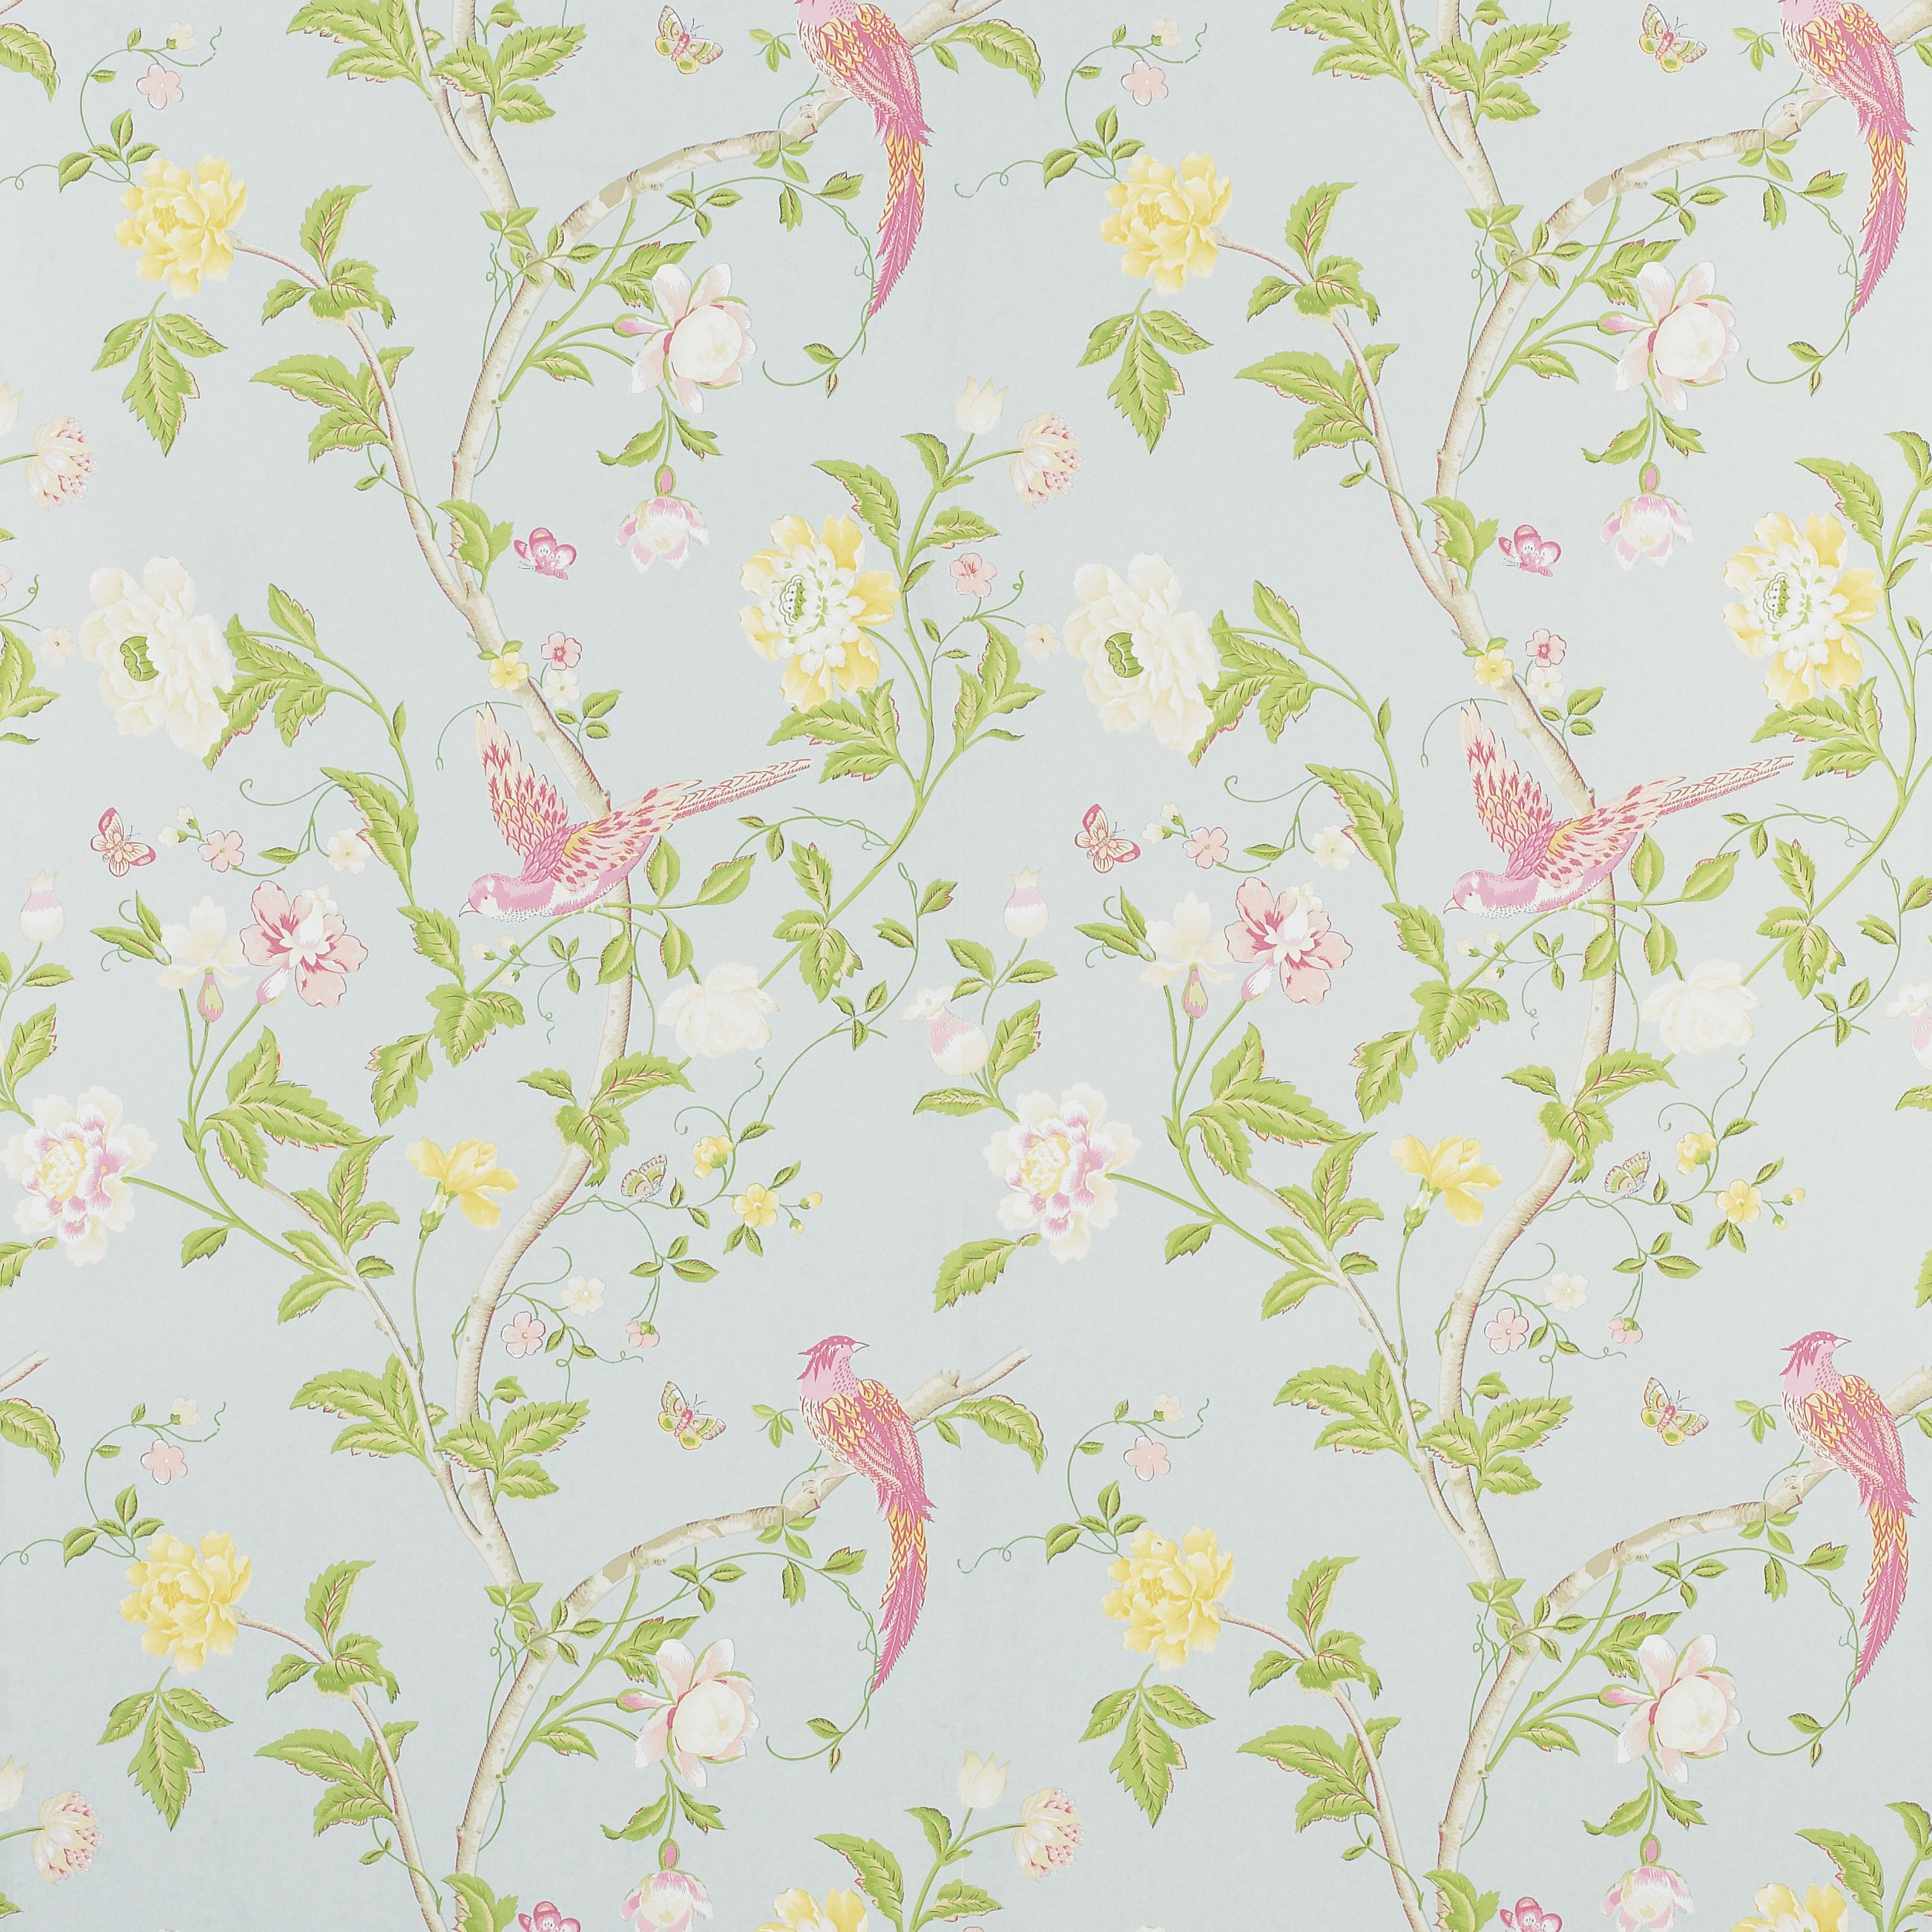 LauraAshleySS14. This wallpaper is floral & duck egg blue